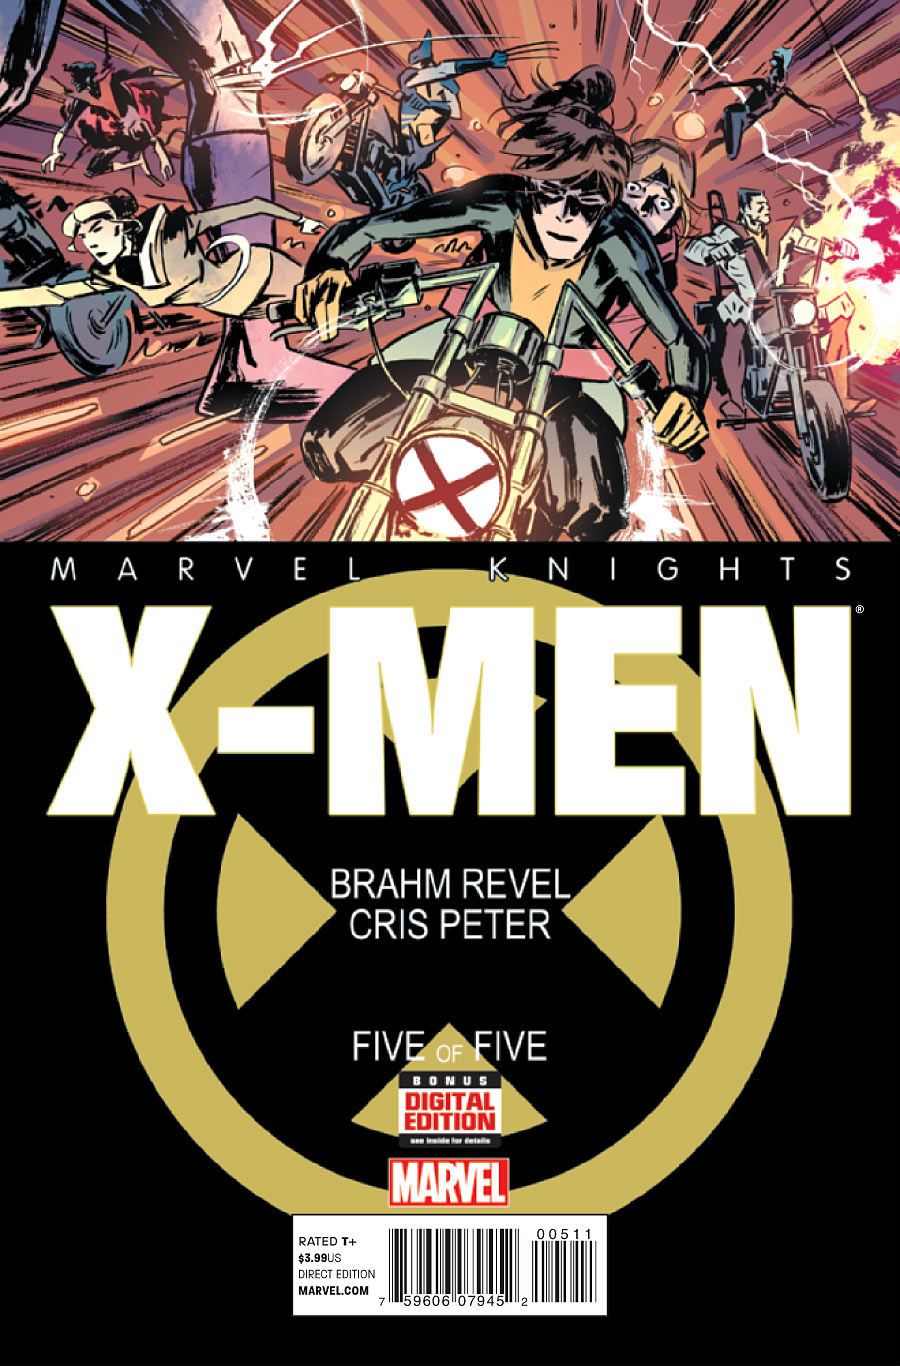 Marvel Knights: X-Men Vol 1 5